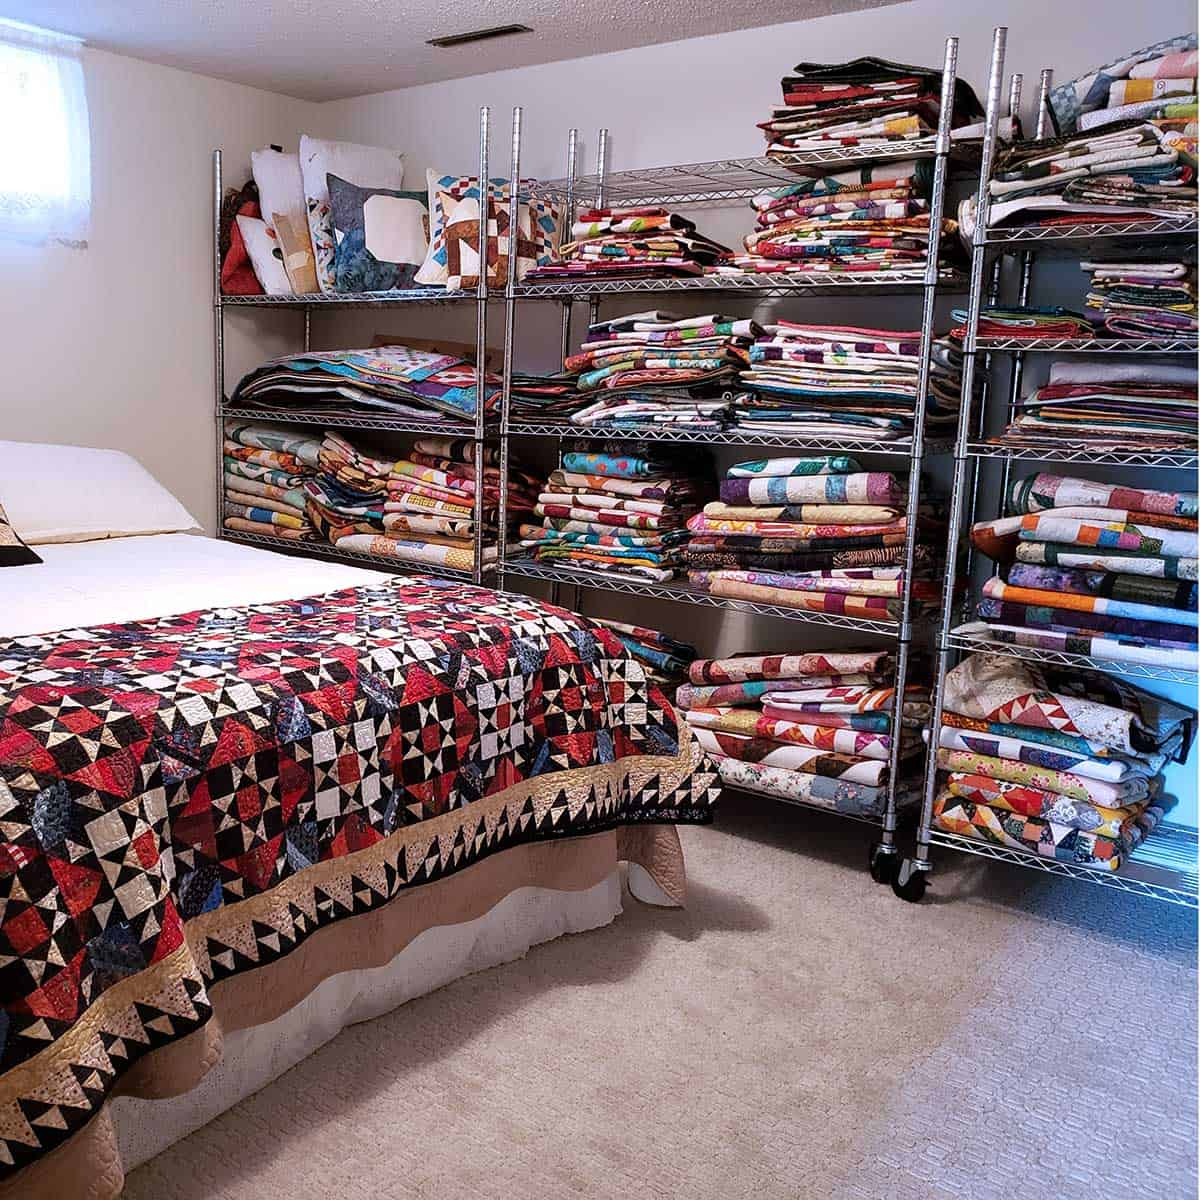 Quilts on shelves